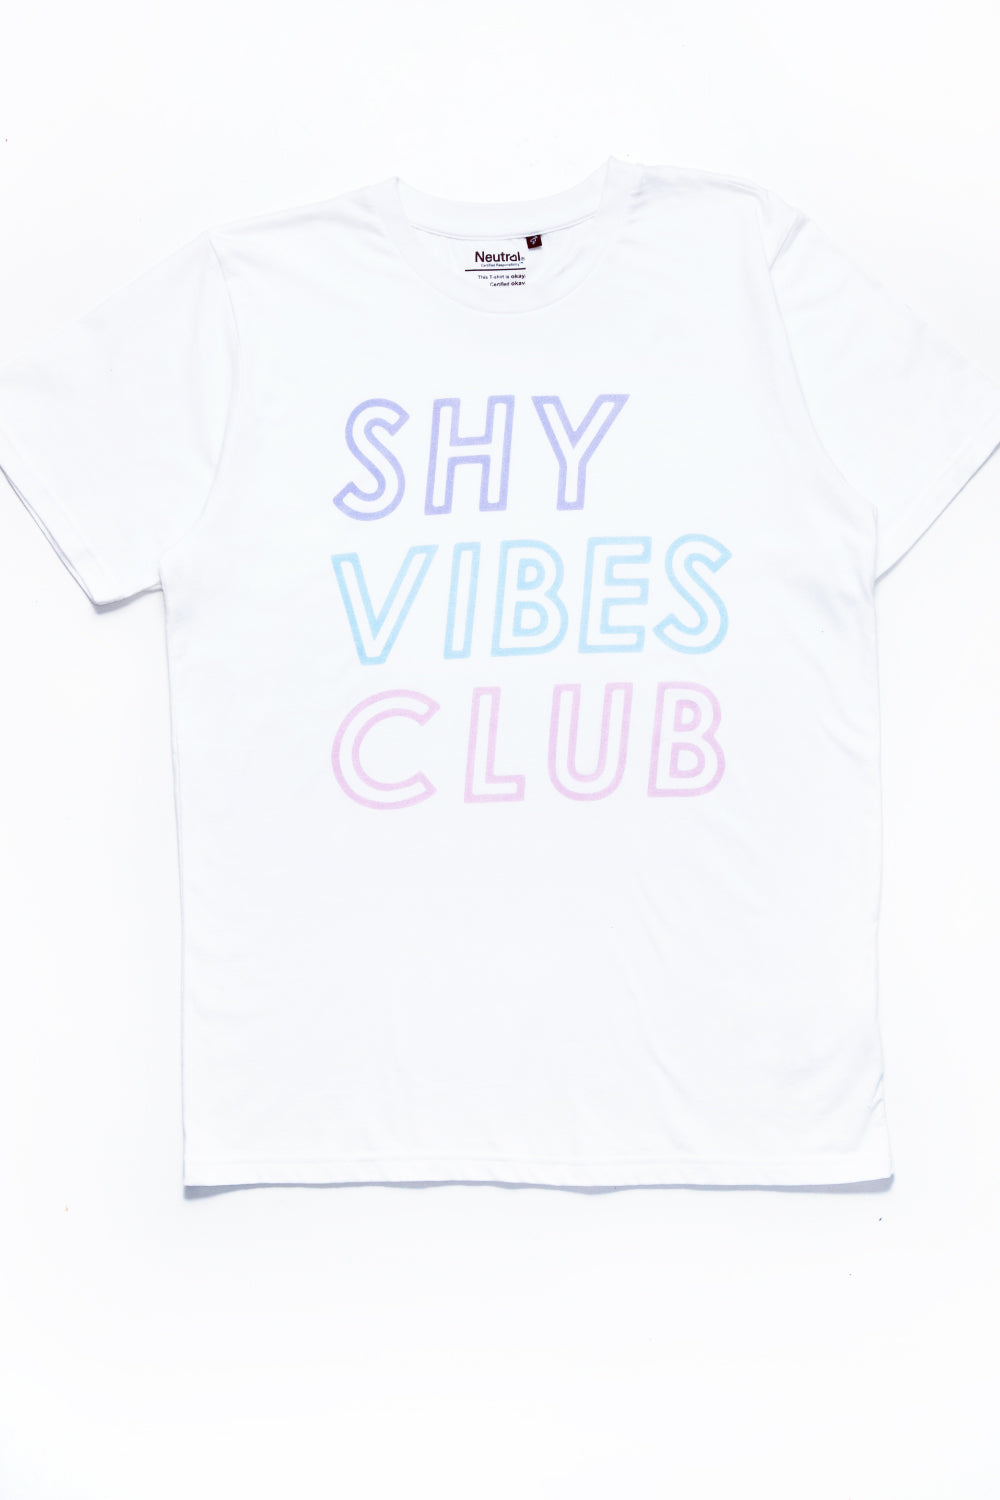 Shy Vibes Club - Tee |white|